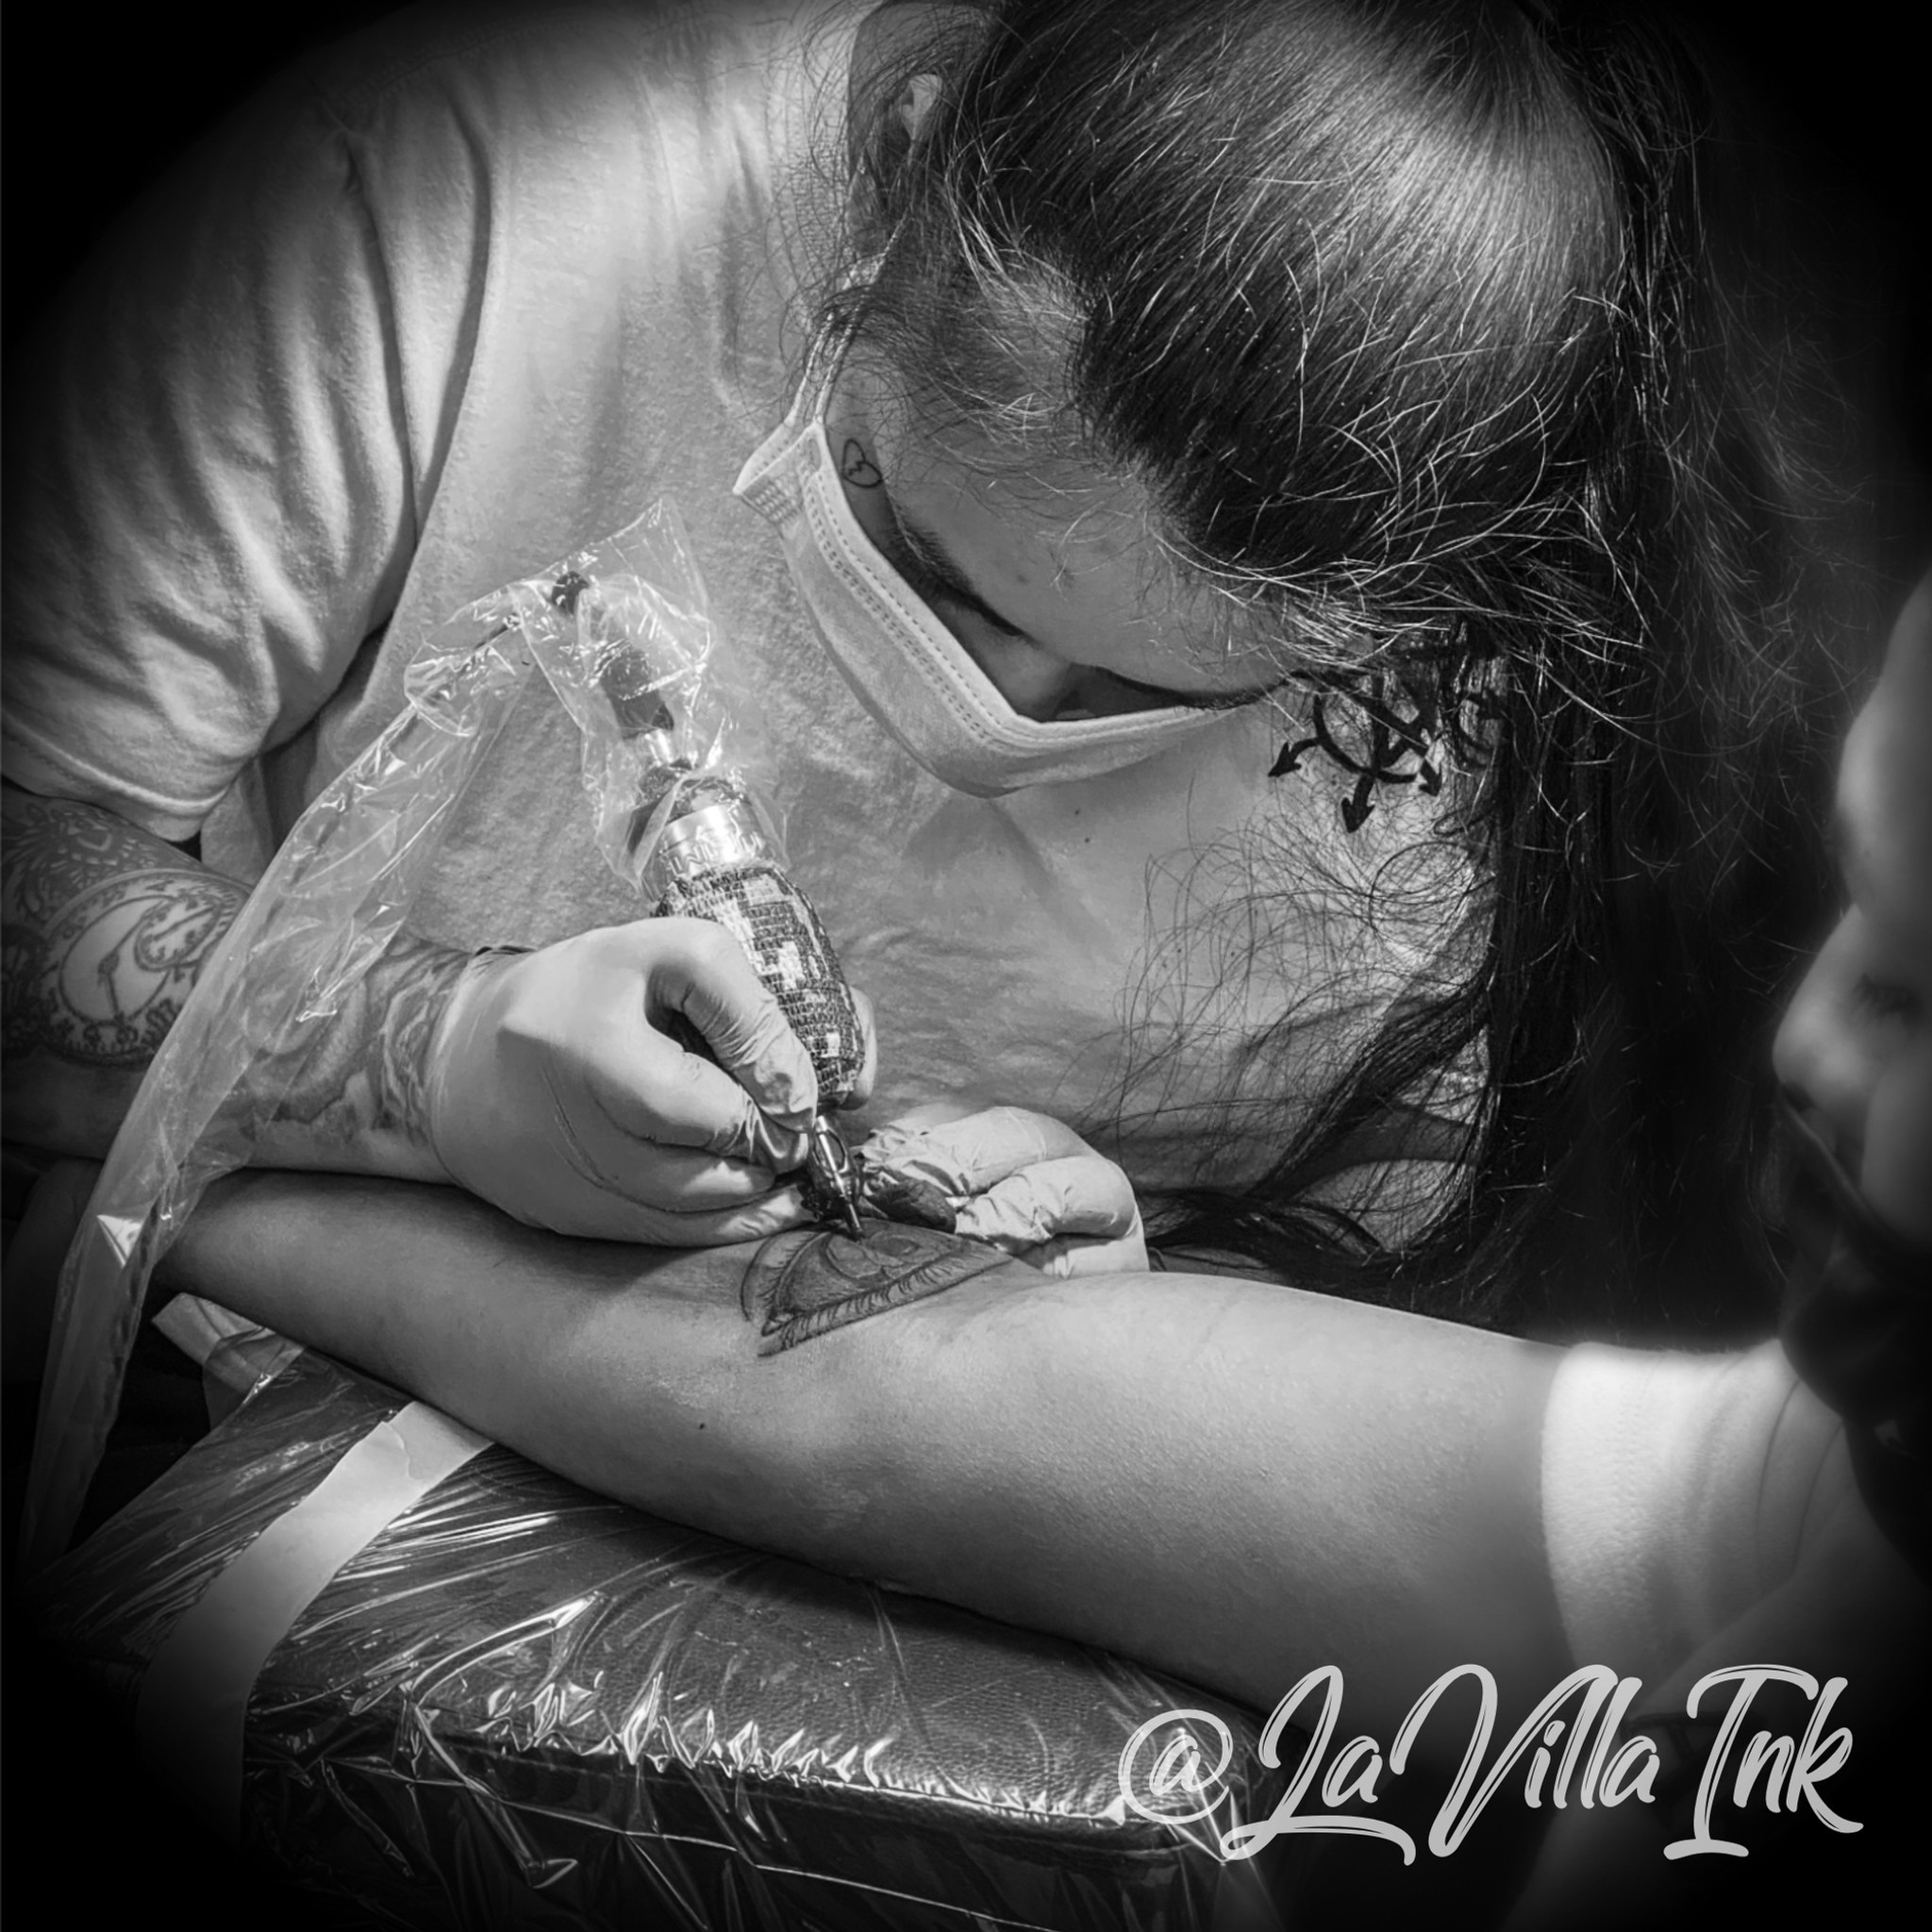 TATTOOING BY CLEO